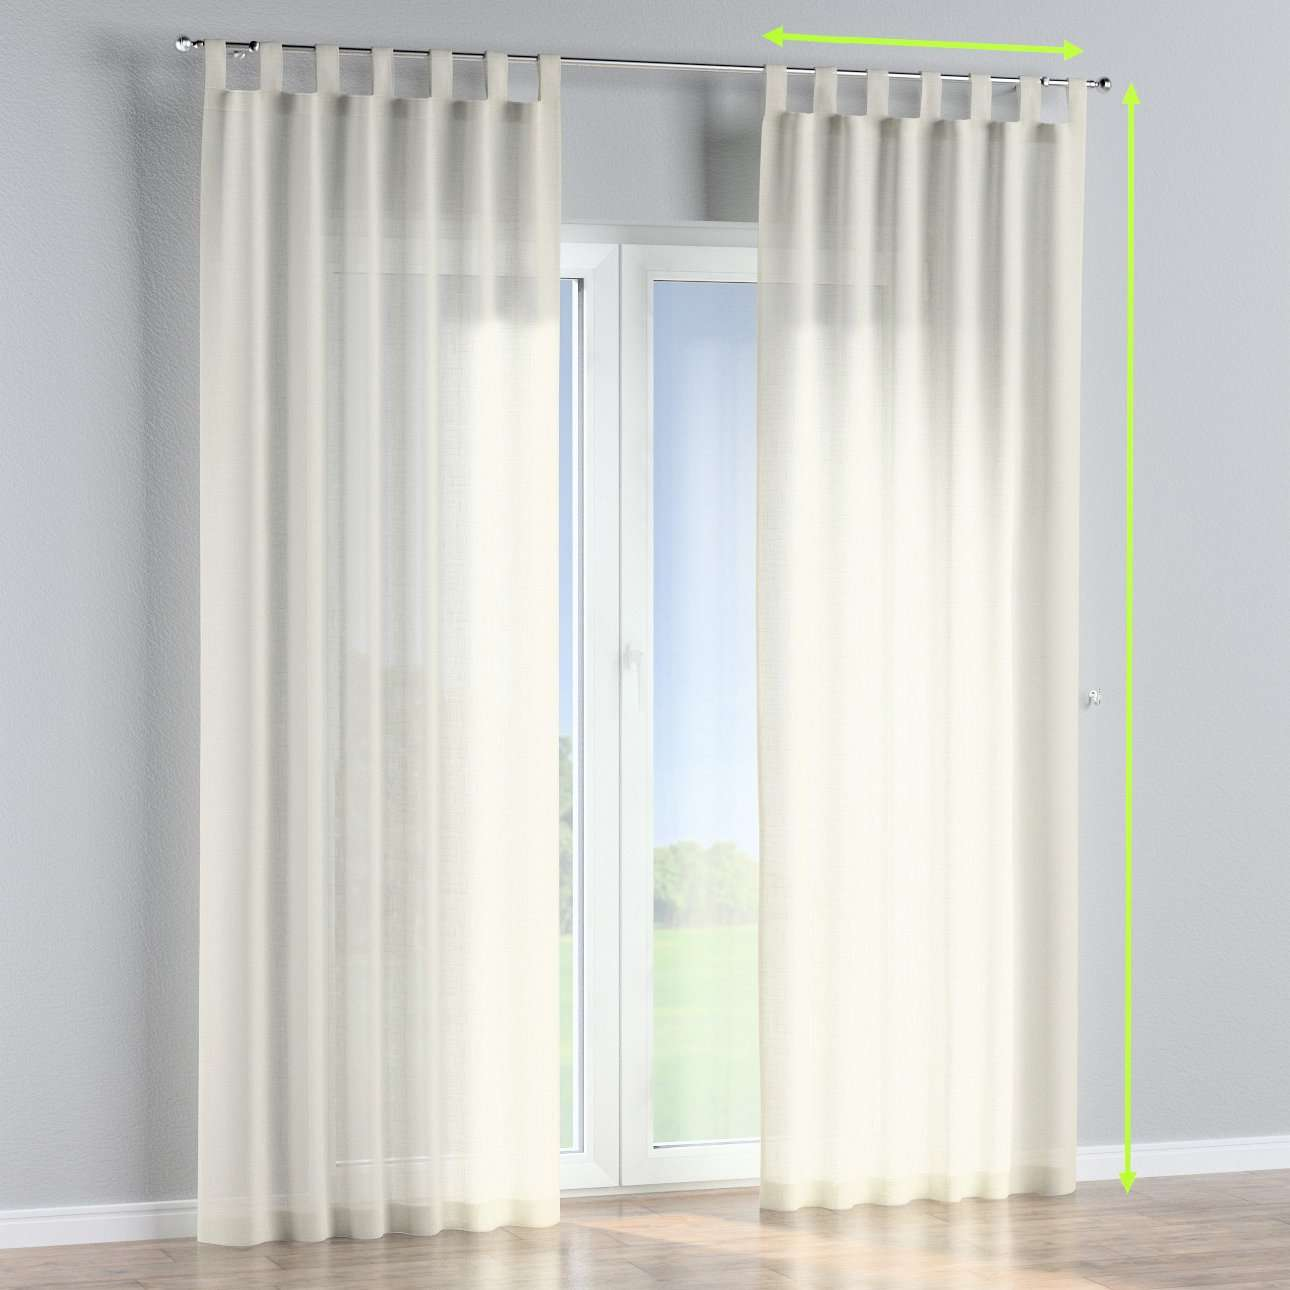 Tab top lined curtains in collection Romantica, fabric: 128-88